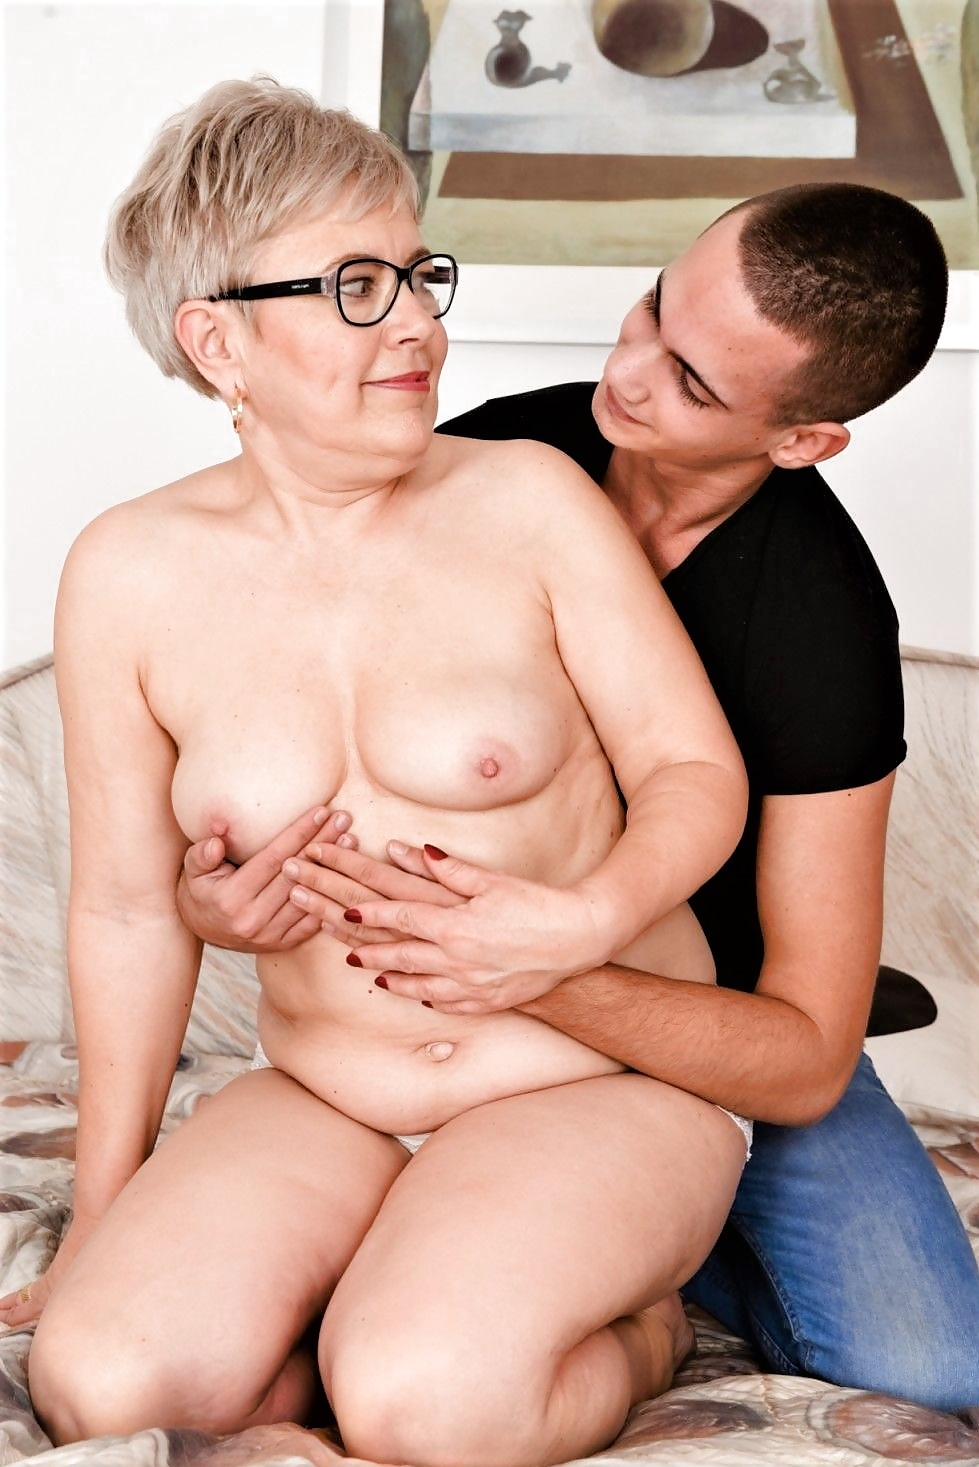 Granny and young man video website, zoey violet naked